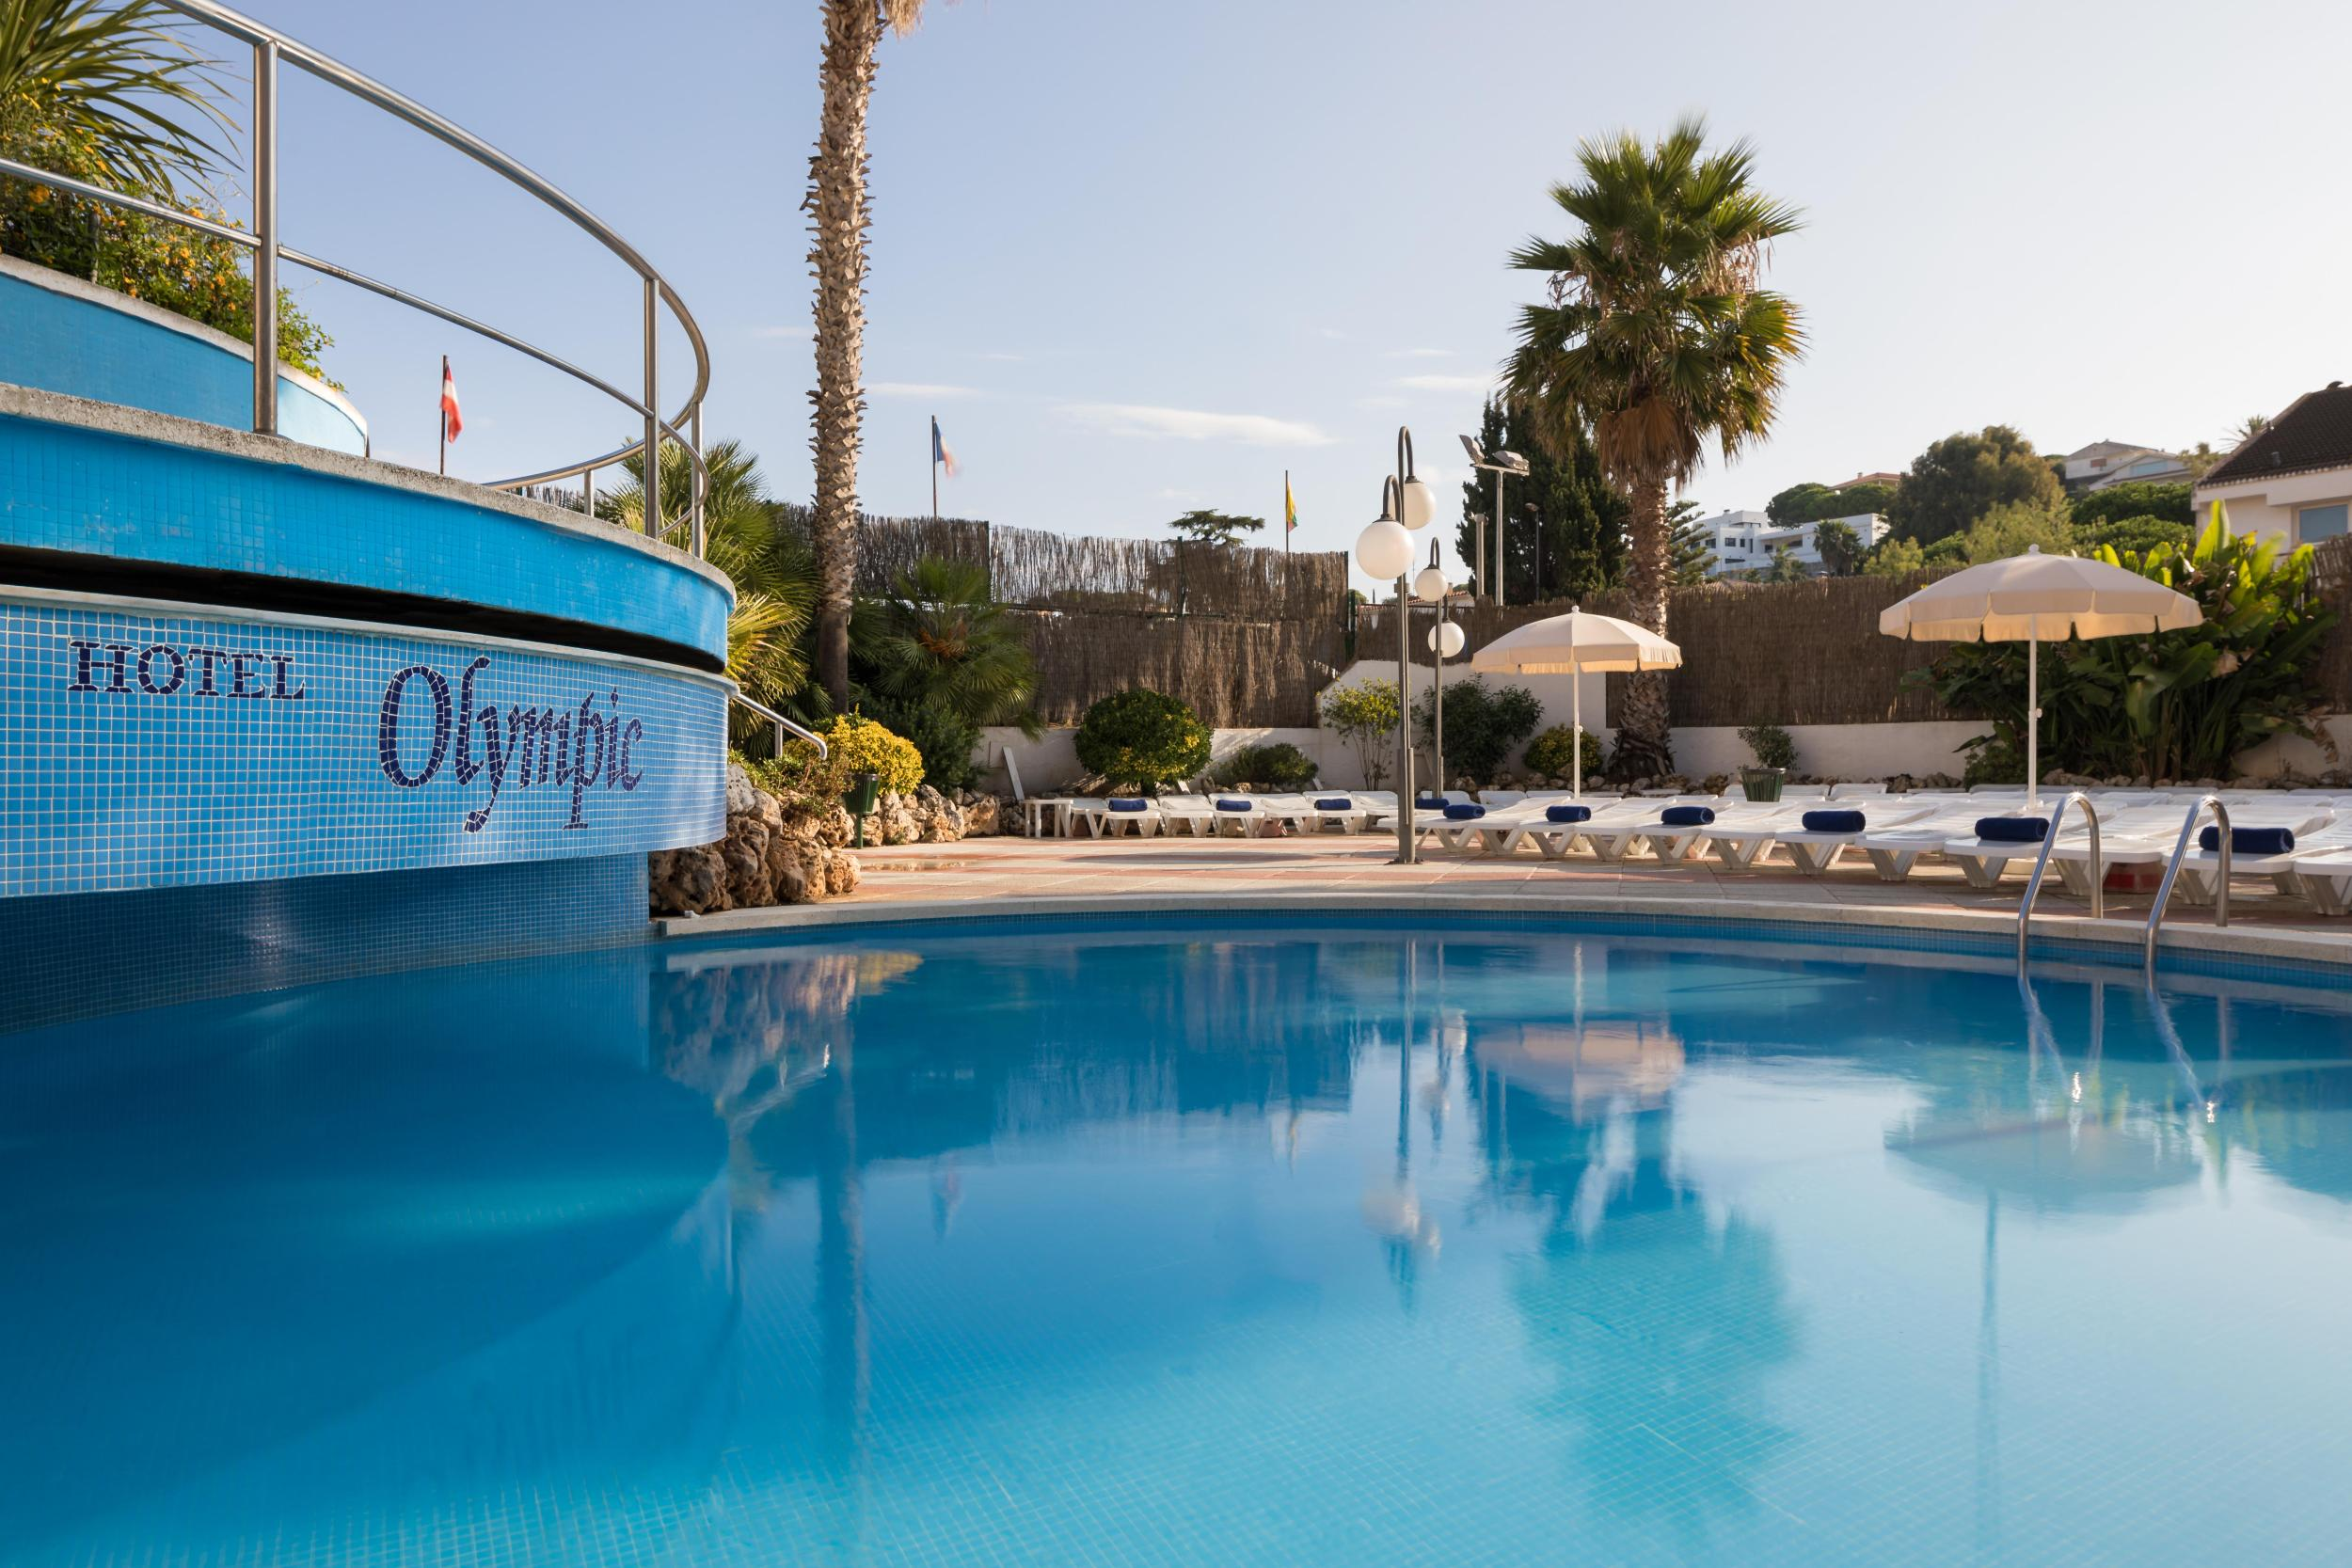 H Top Olympic Hotel In Calella Spain Holidays From 163